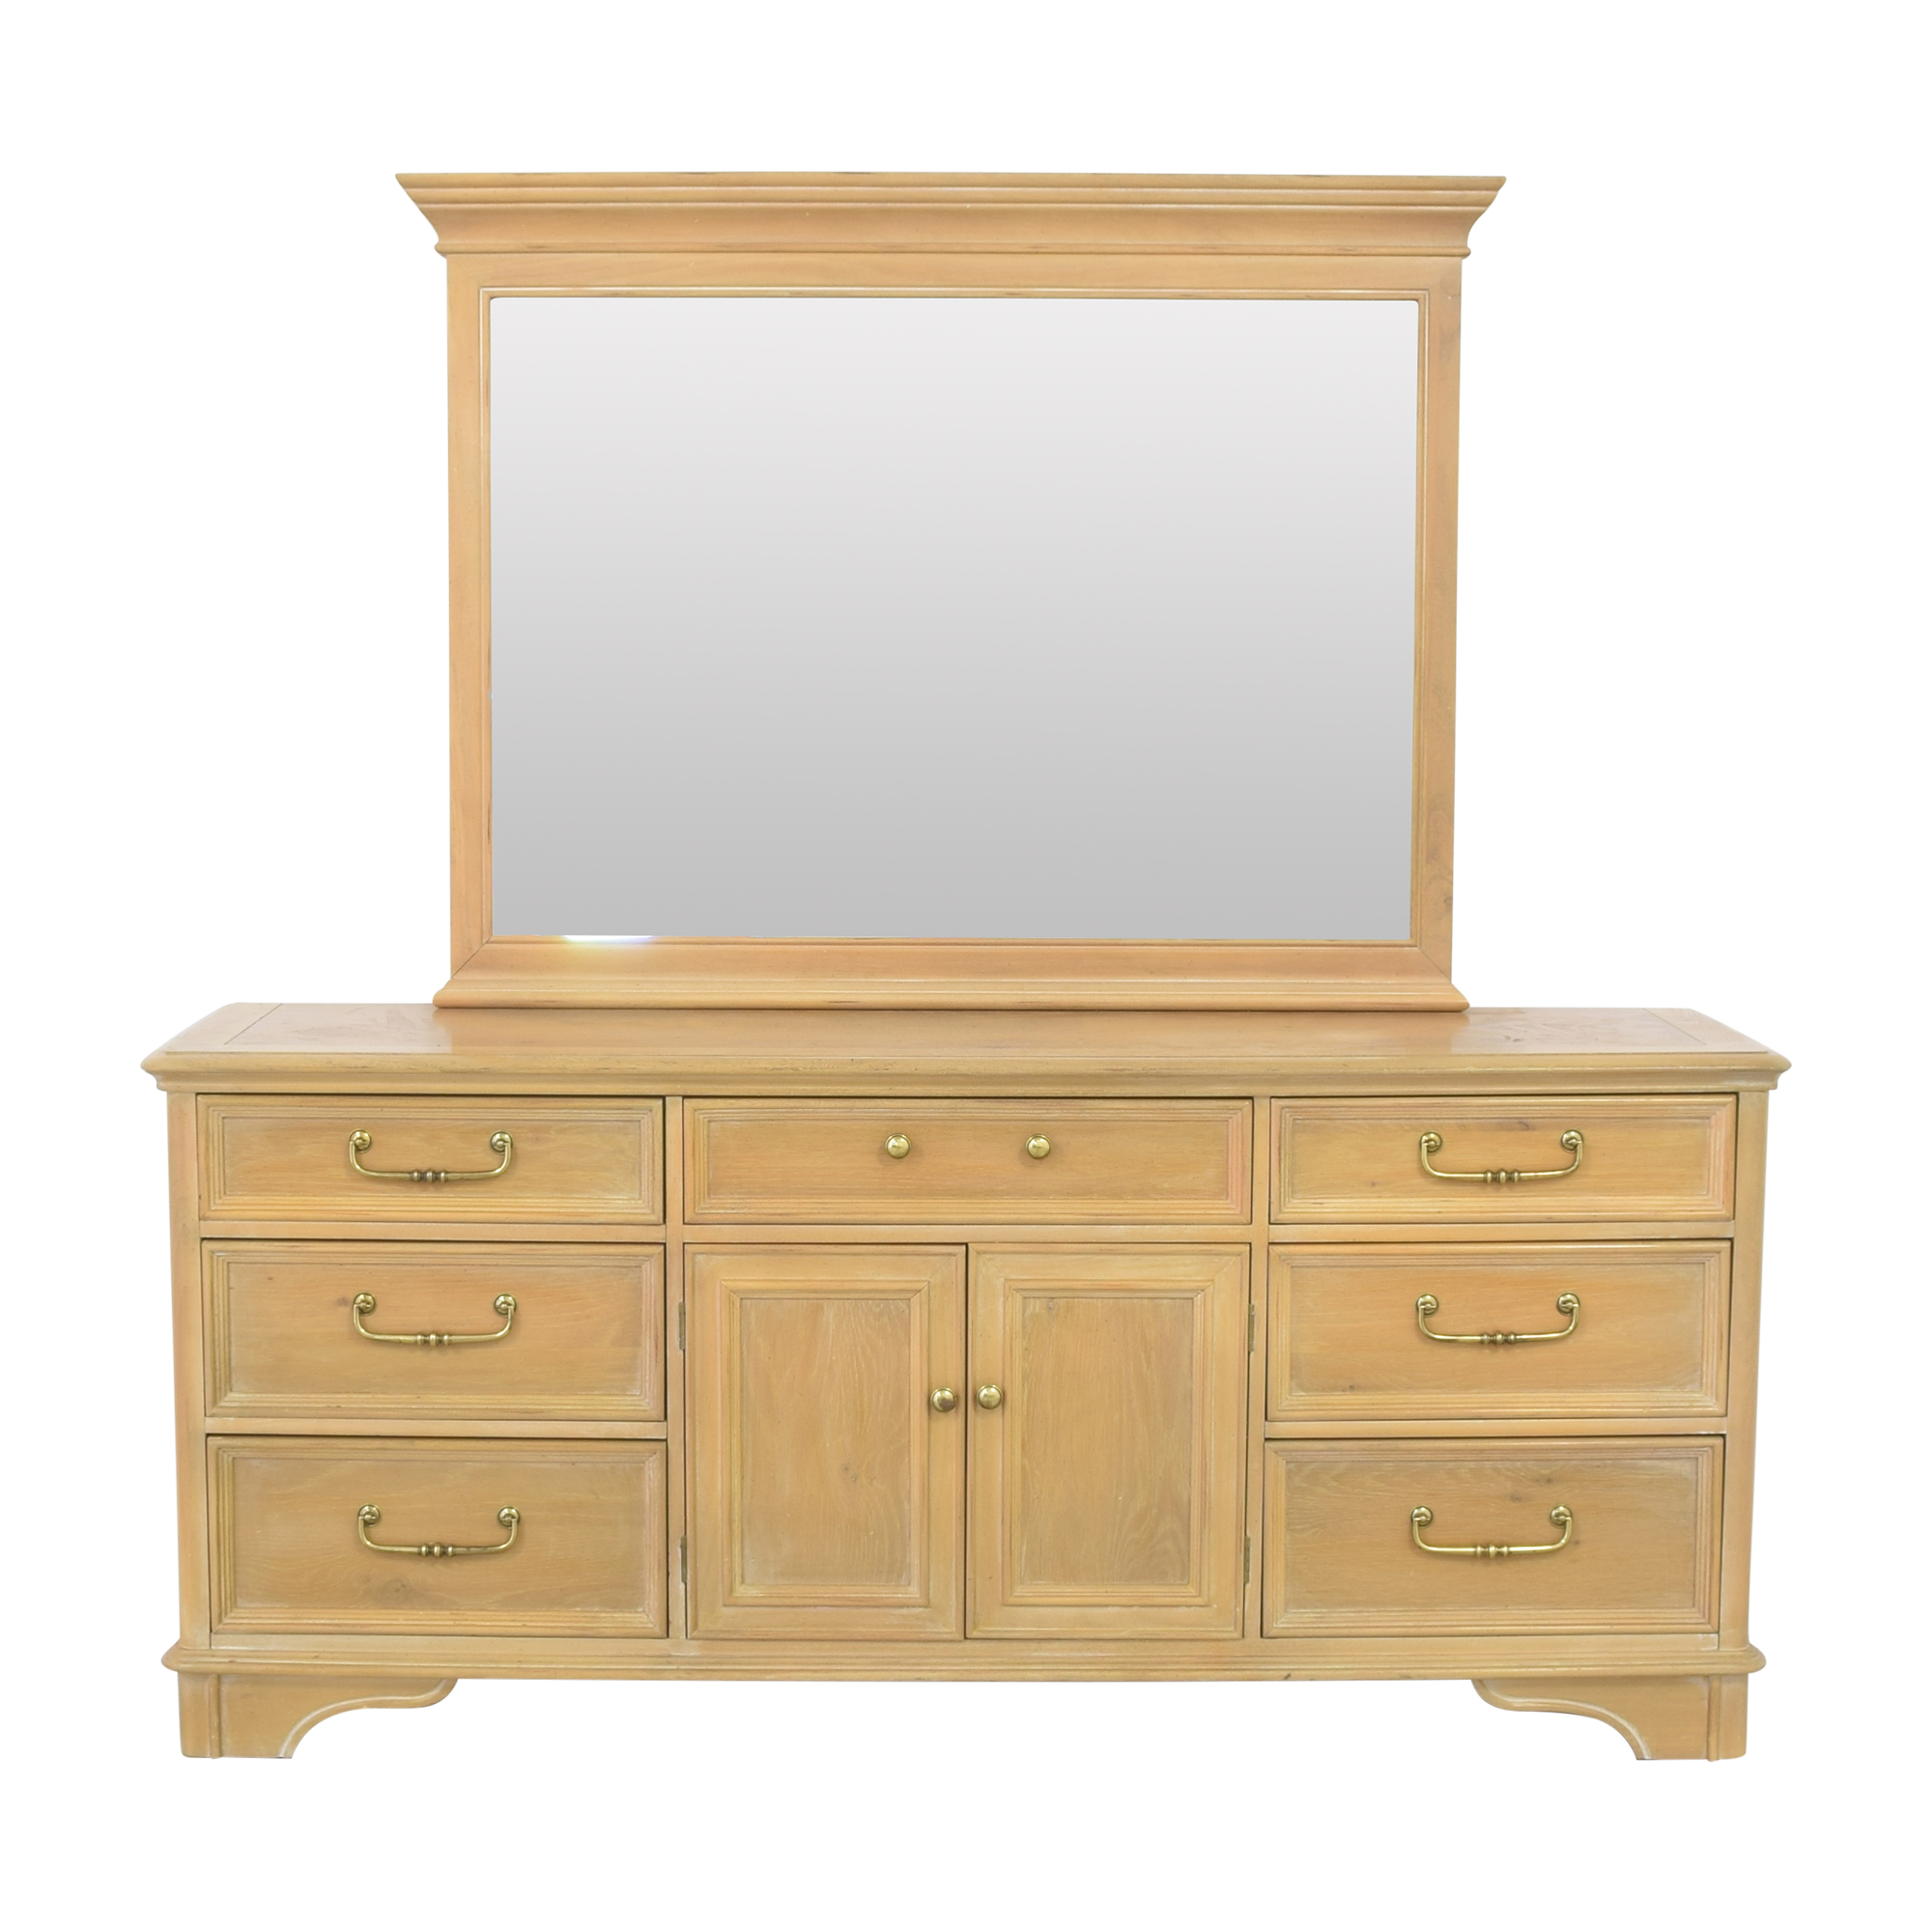 Bernhardt Triple Dresser with Mirror / Dressers